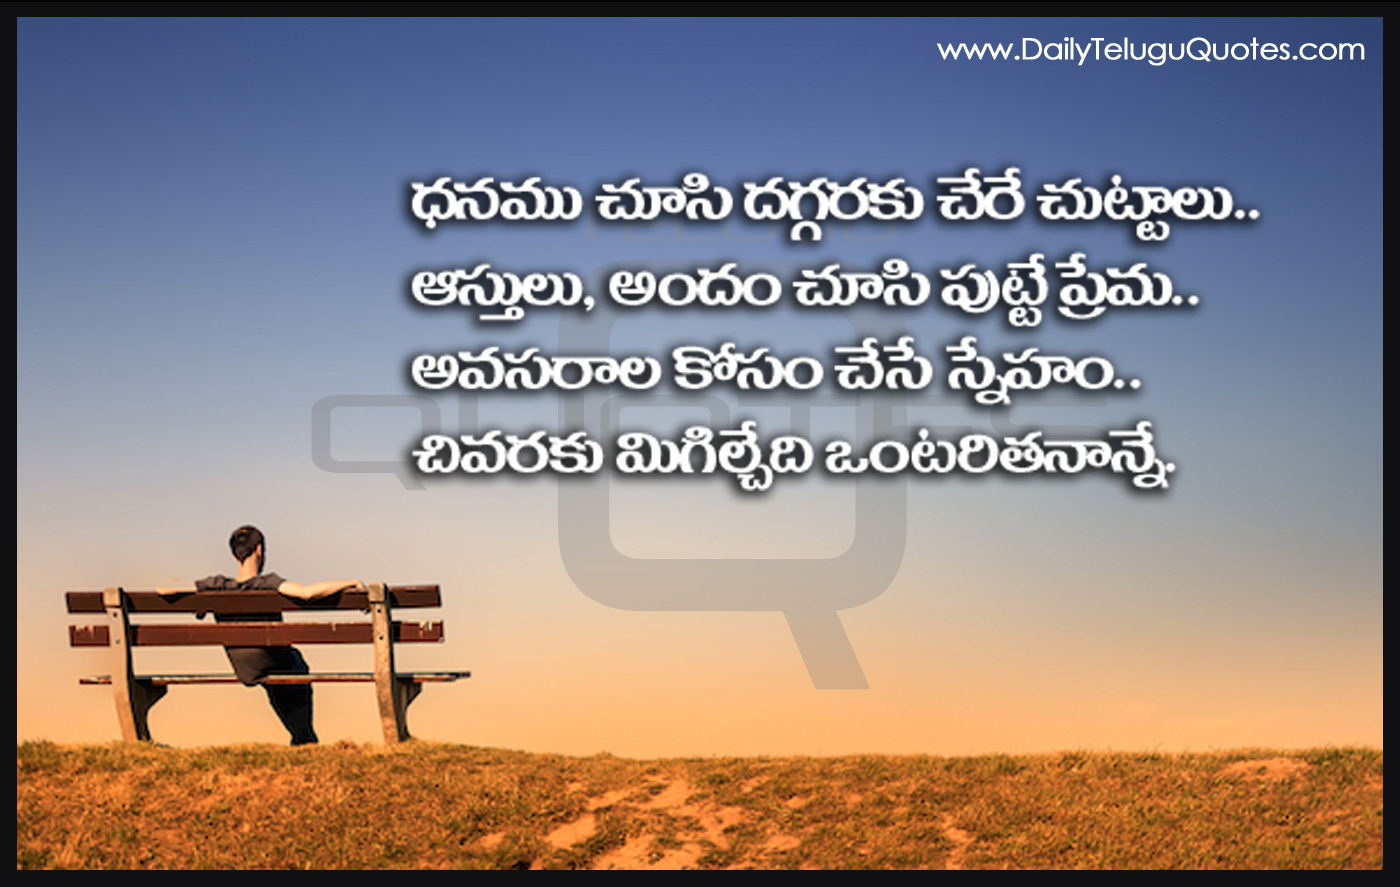 Popular Inspirational Quotes Famous Telugu Quotes Hd Wallpaers Most Popular Life Inspiration